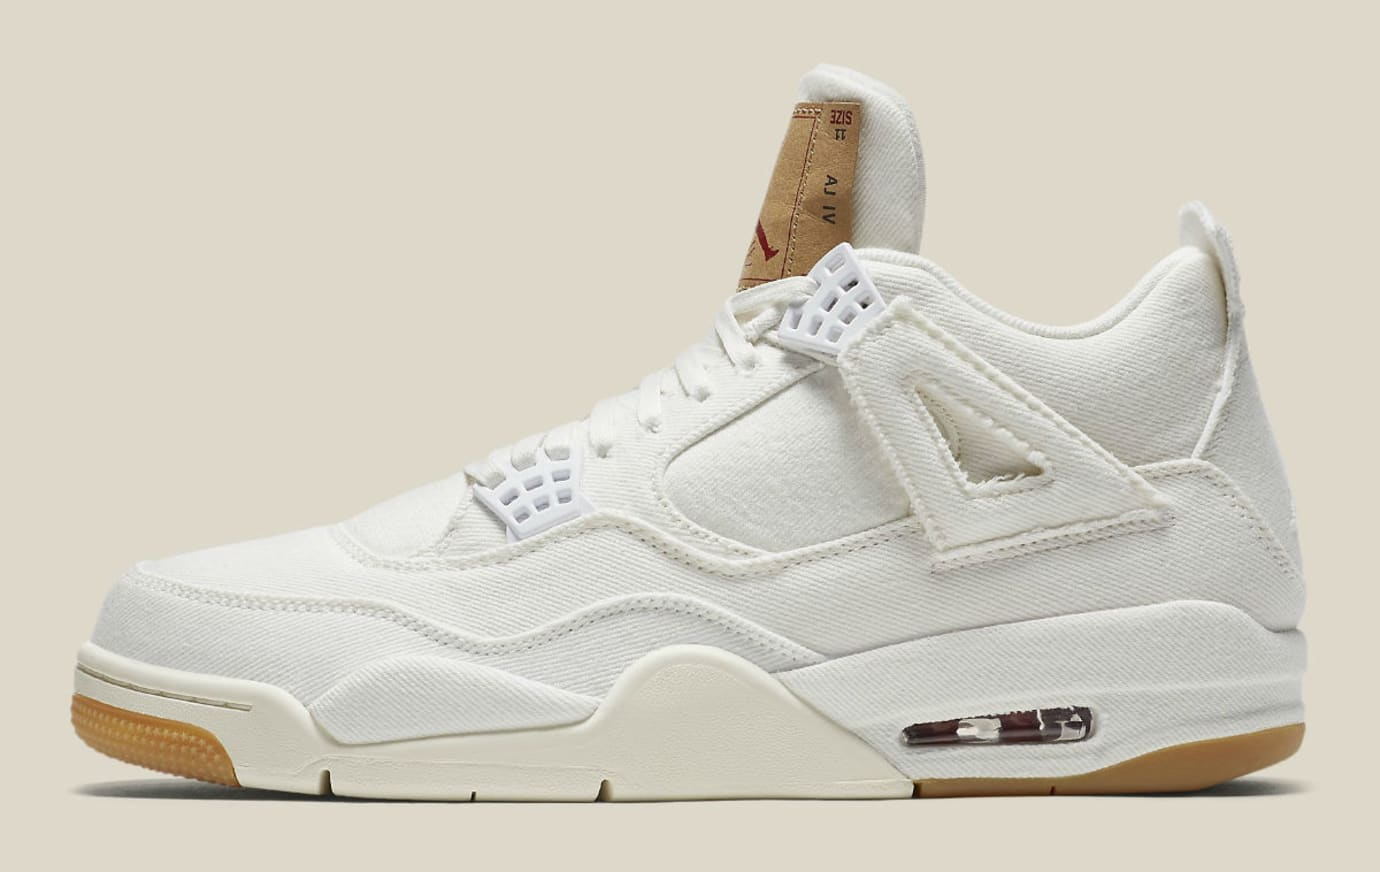 huge discount 44a1c ac150 White Levi's x Air Jordan 4 Release Date AO2571-1001 | Sole ...